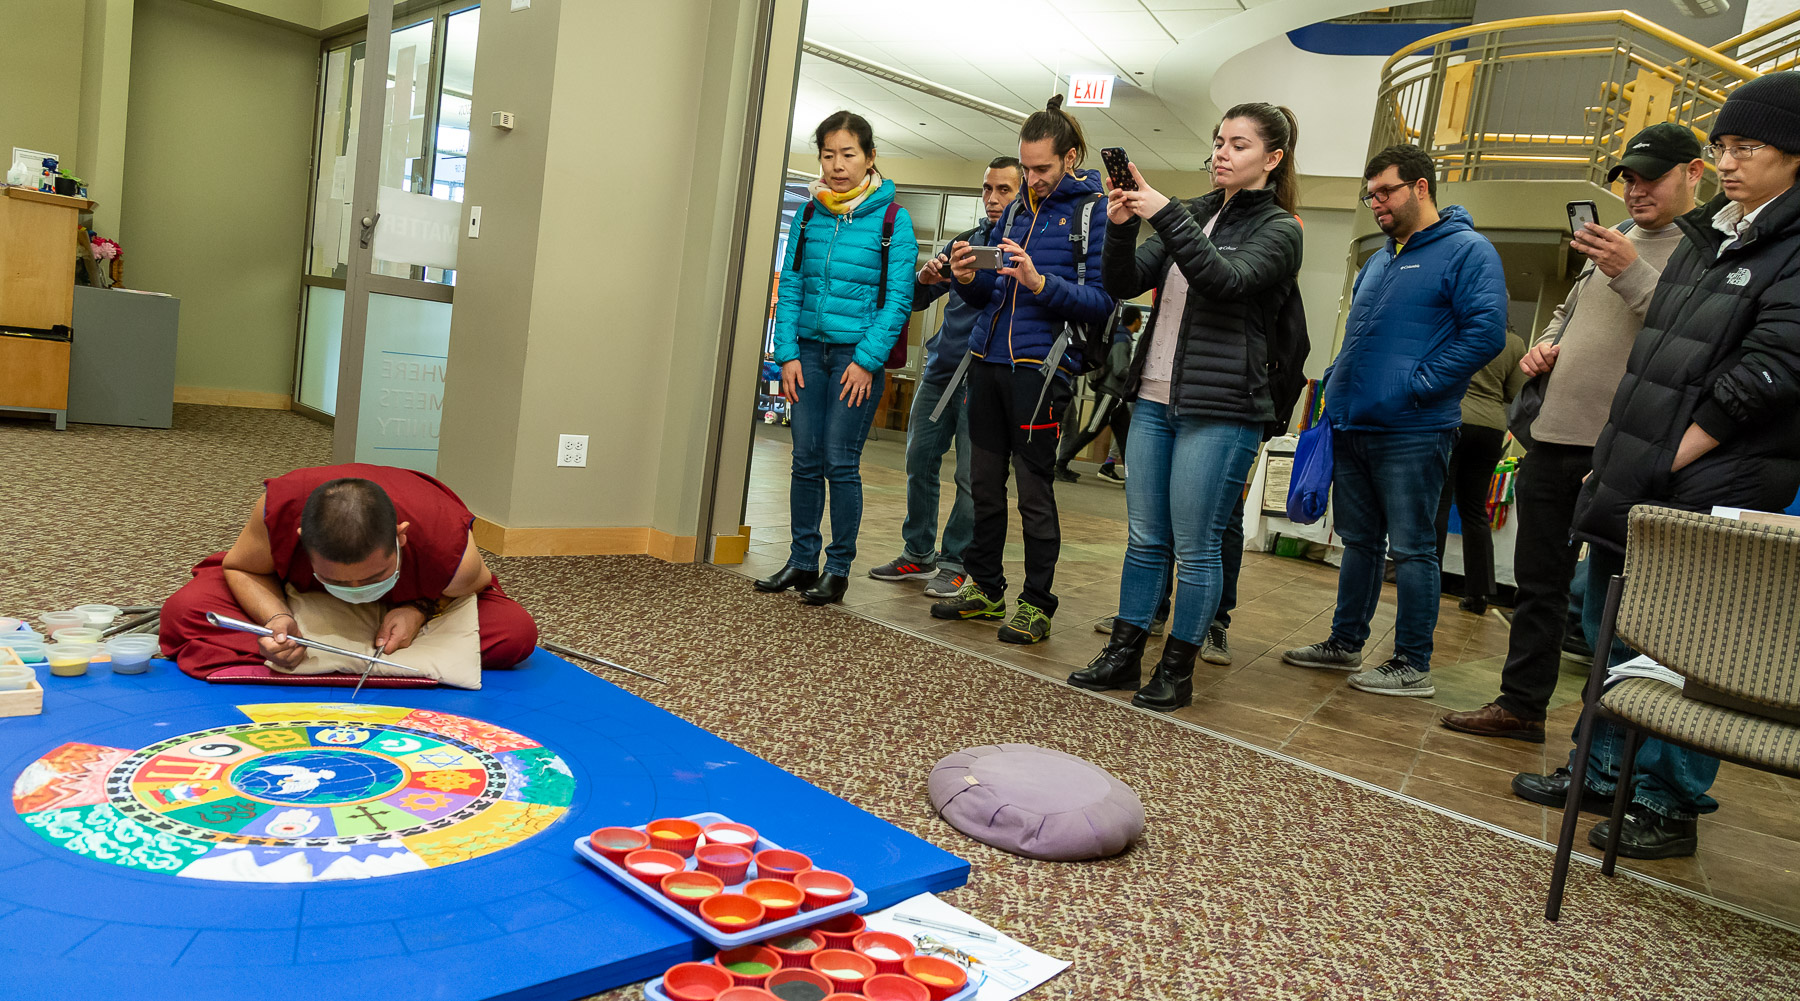 Onlookers watch a Buddhist monk create a sand mandala, Wednesday, Oct. 31, in the Lincoln Park Student Center. (DePaul University/Jeff Carrion)